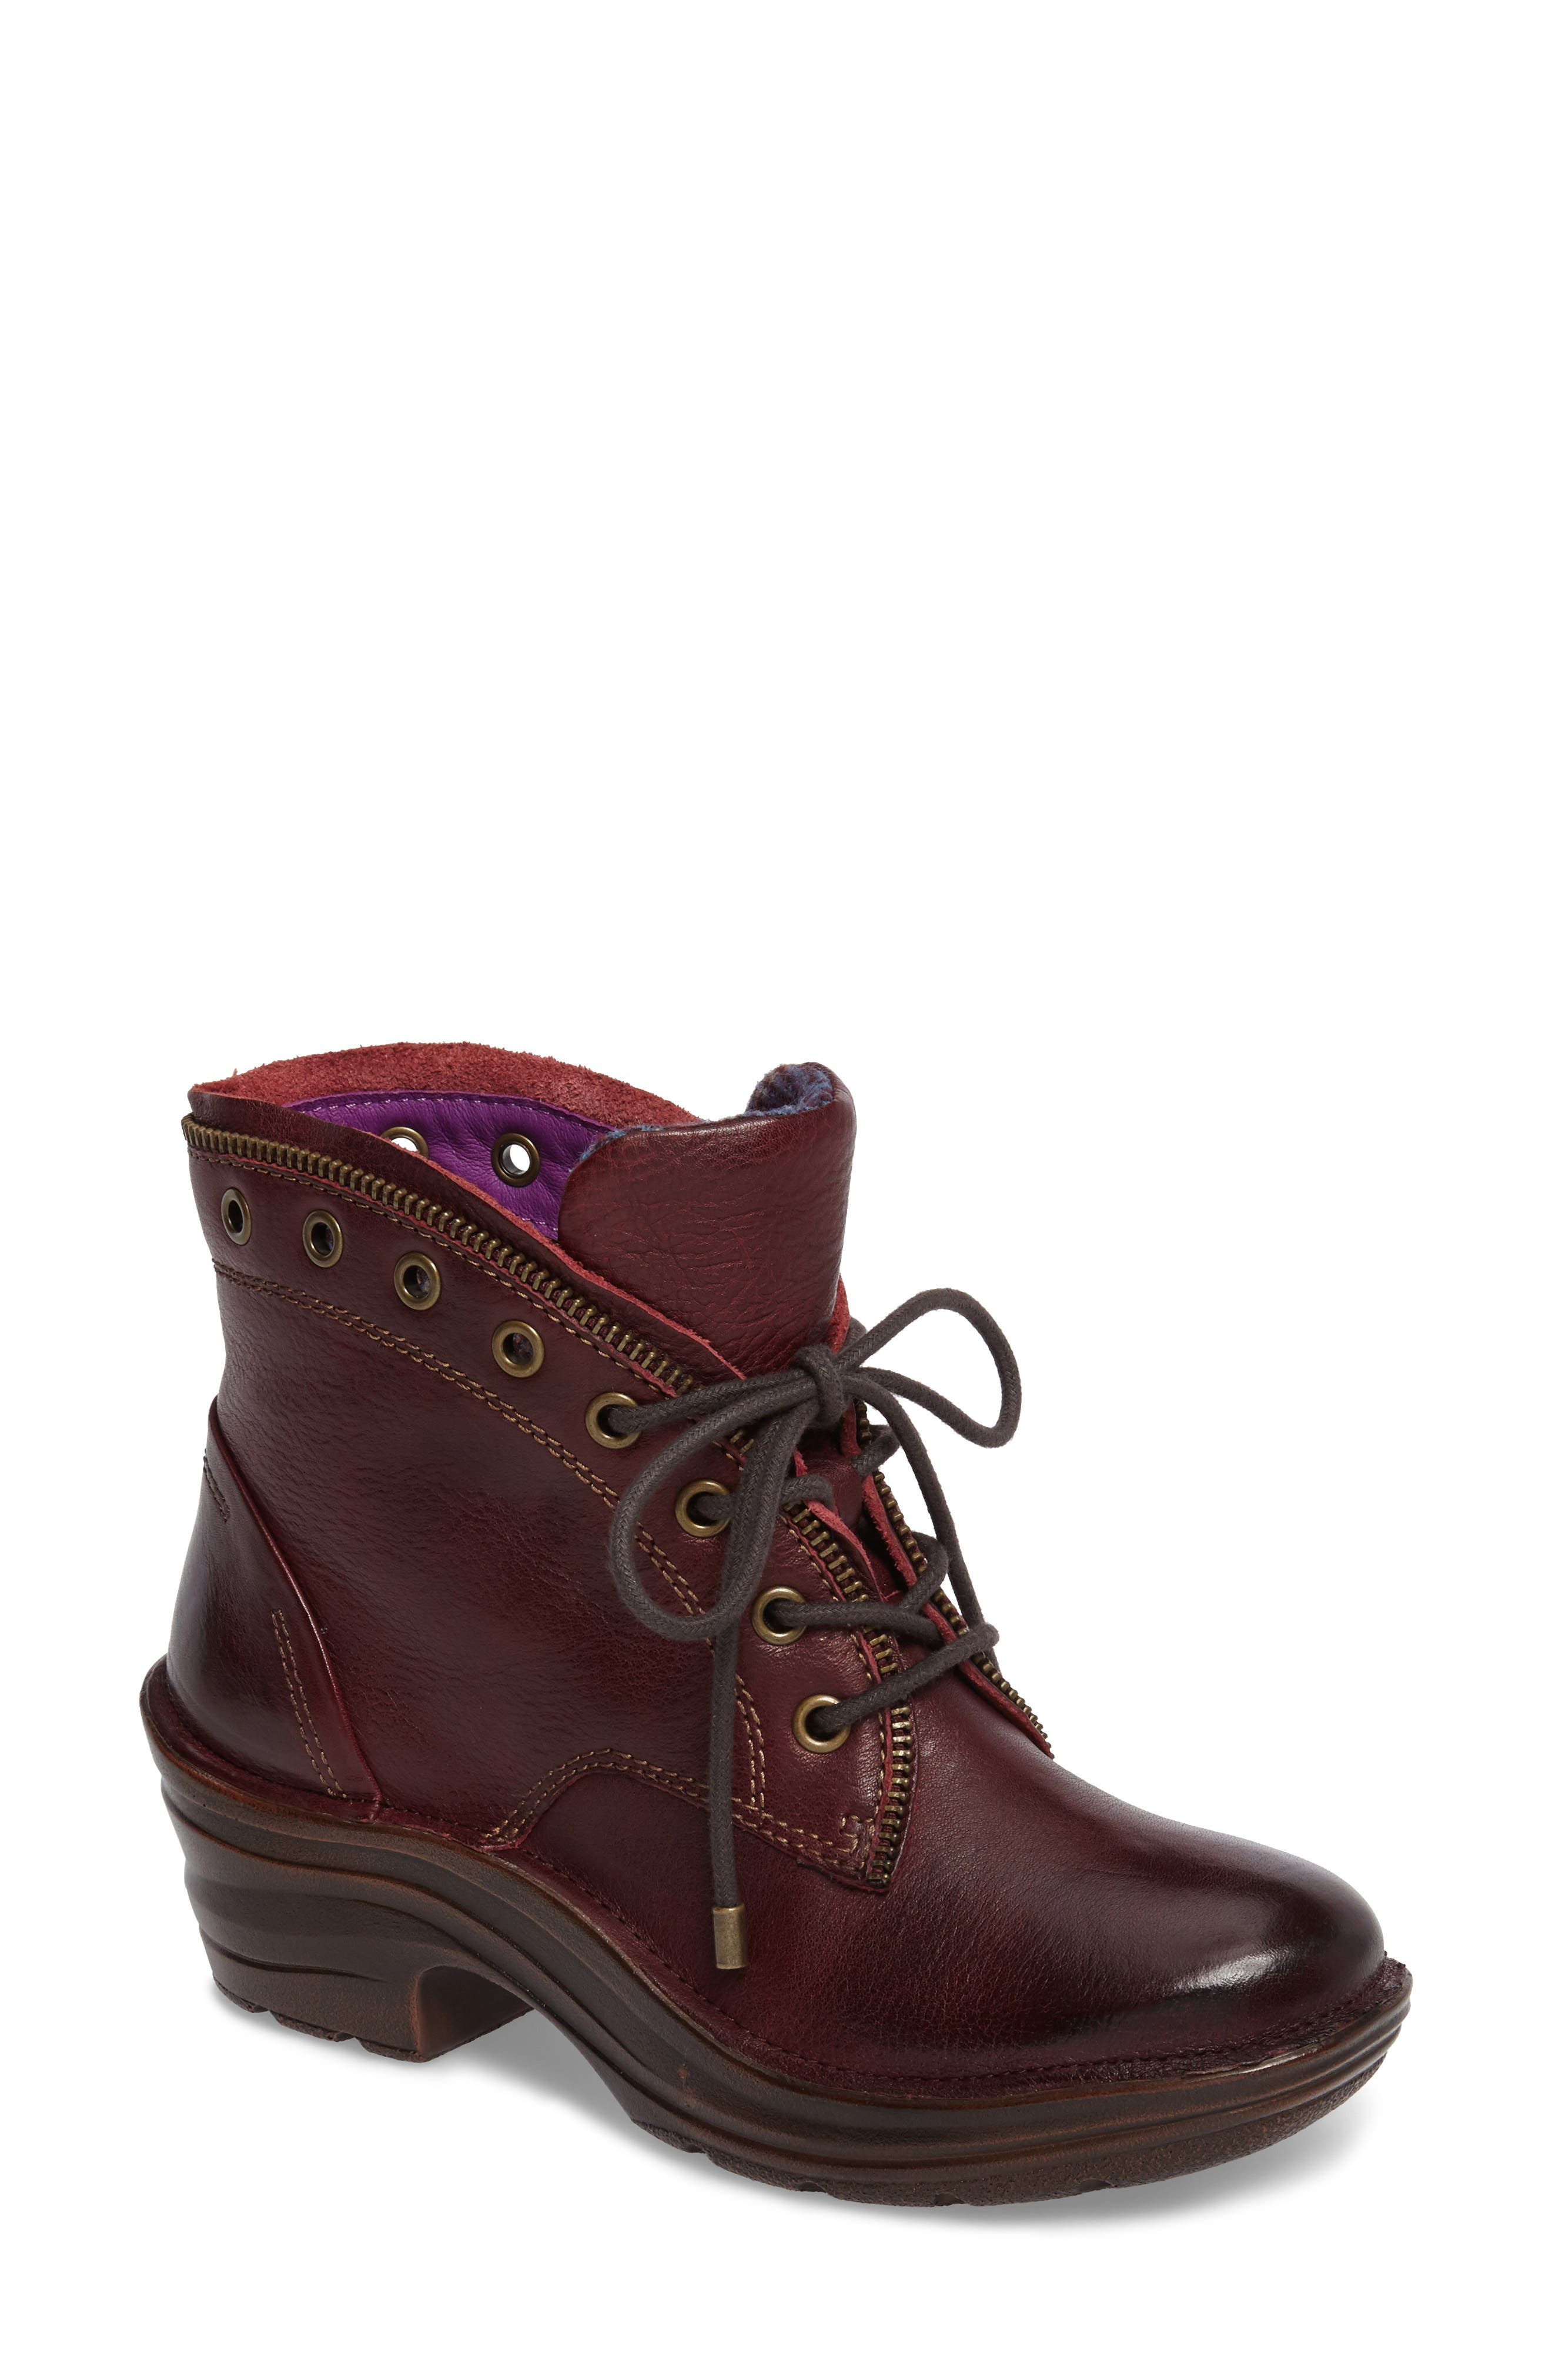 Rangely Boot,                         Main,                         color, Marsala Red Leather